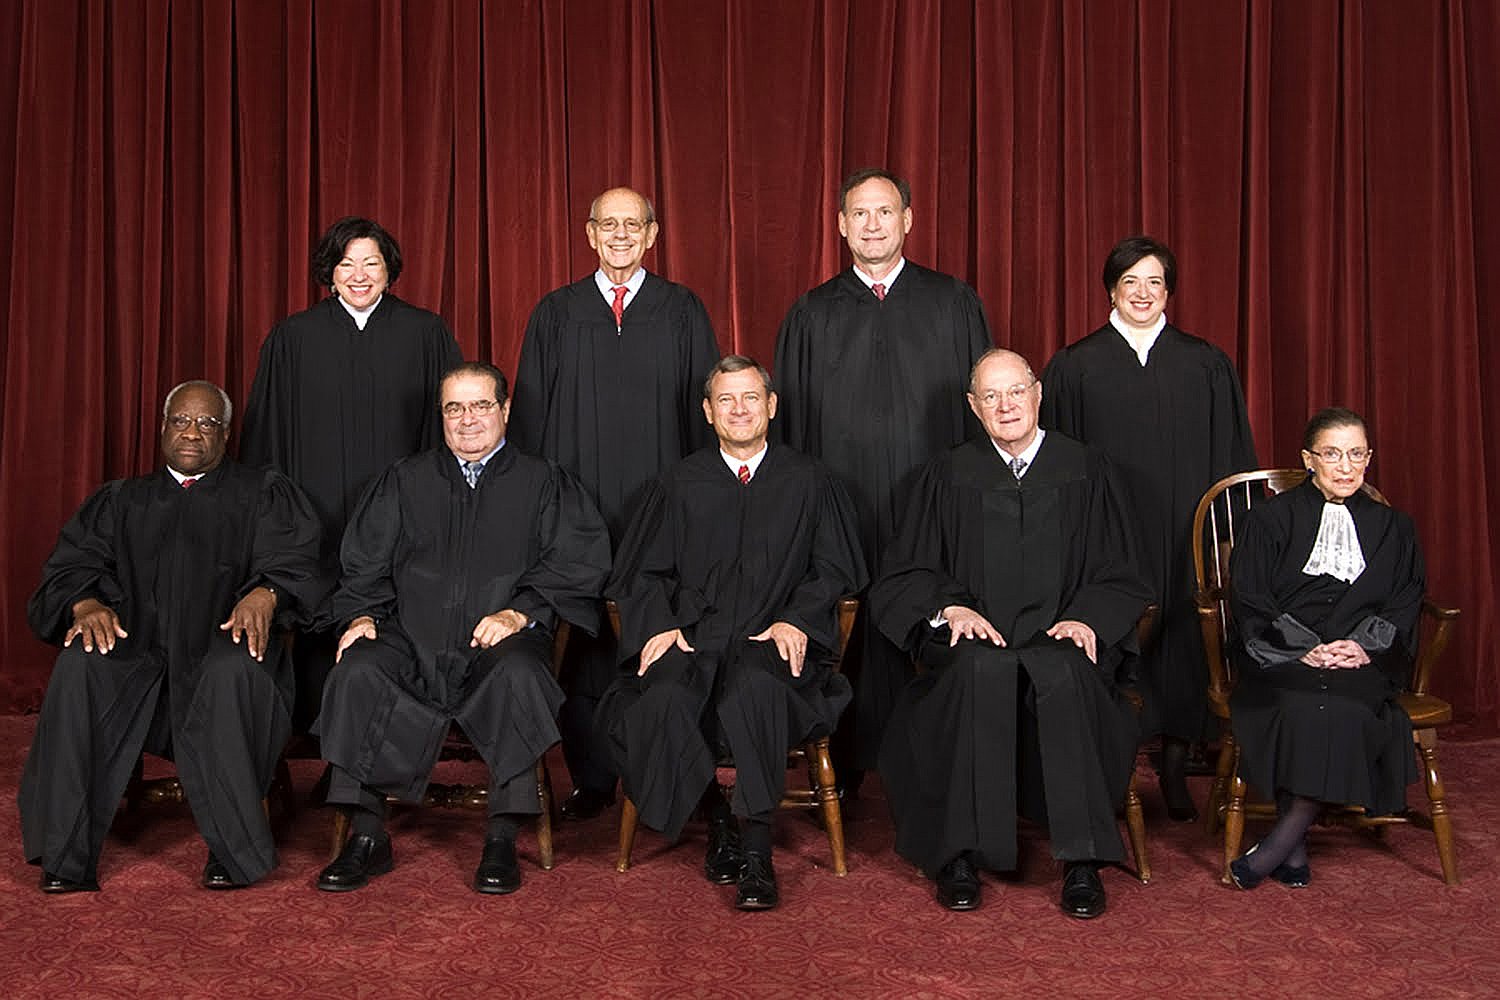 The Supreme Court And Term Limits US Term Limits Supreme Court US  The Supreme Court And Term Limits